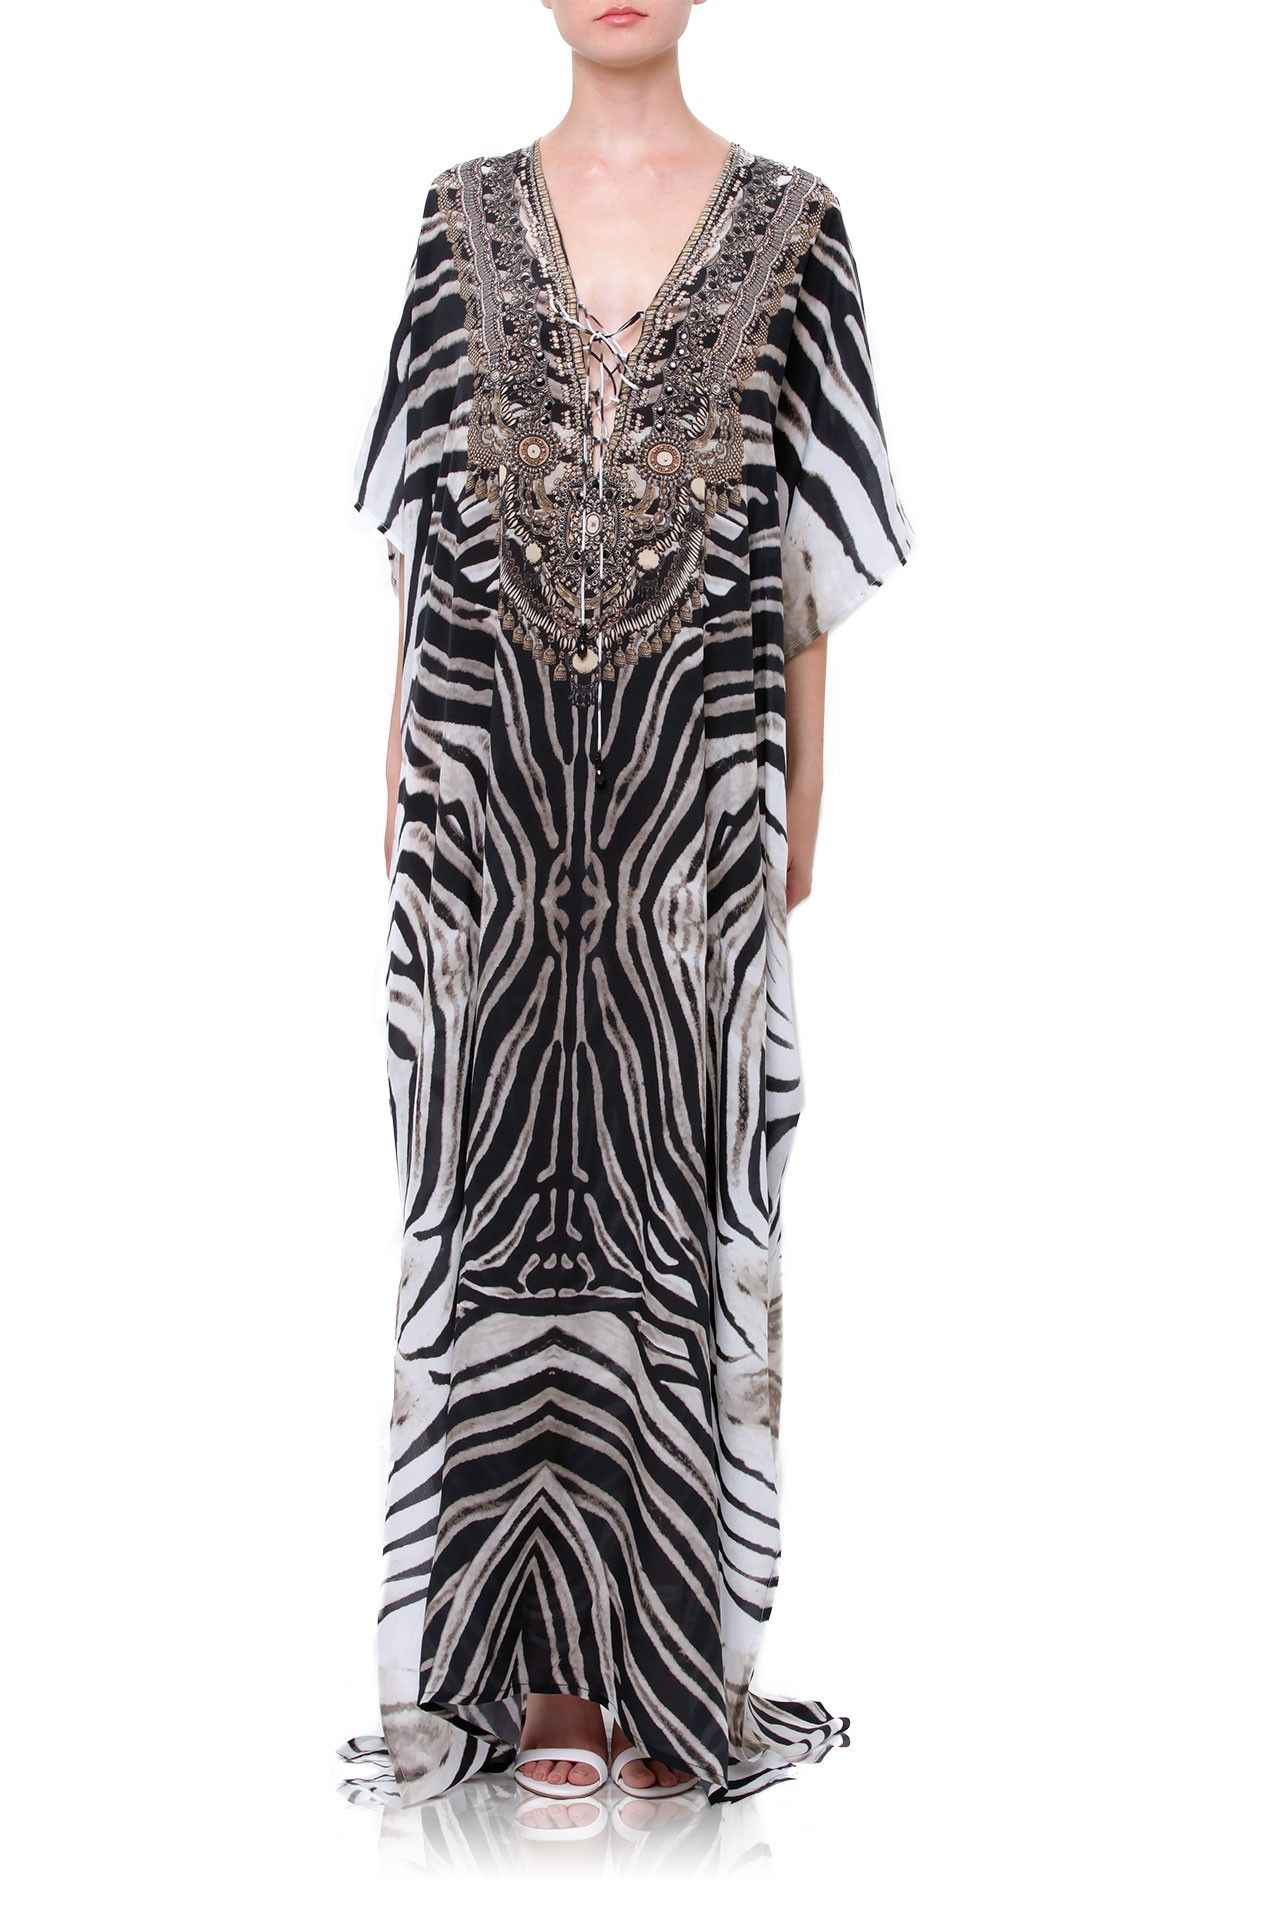 Black and white printed long kaftan dress in stripes clothes in